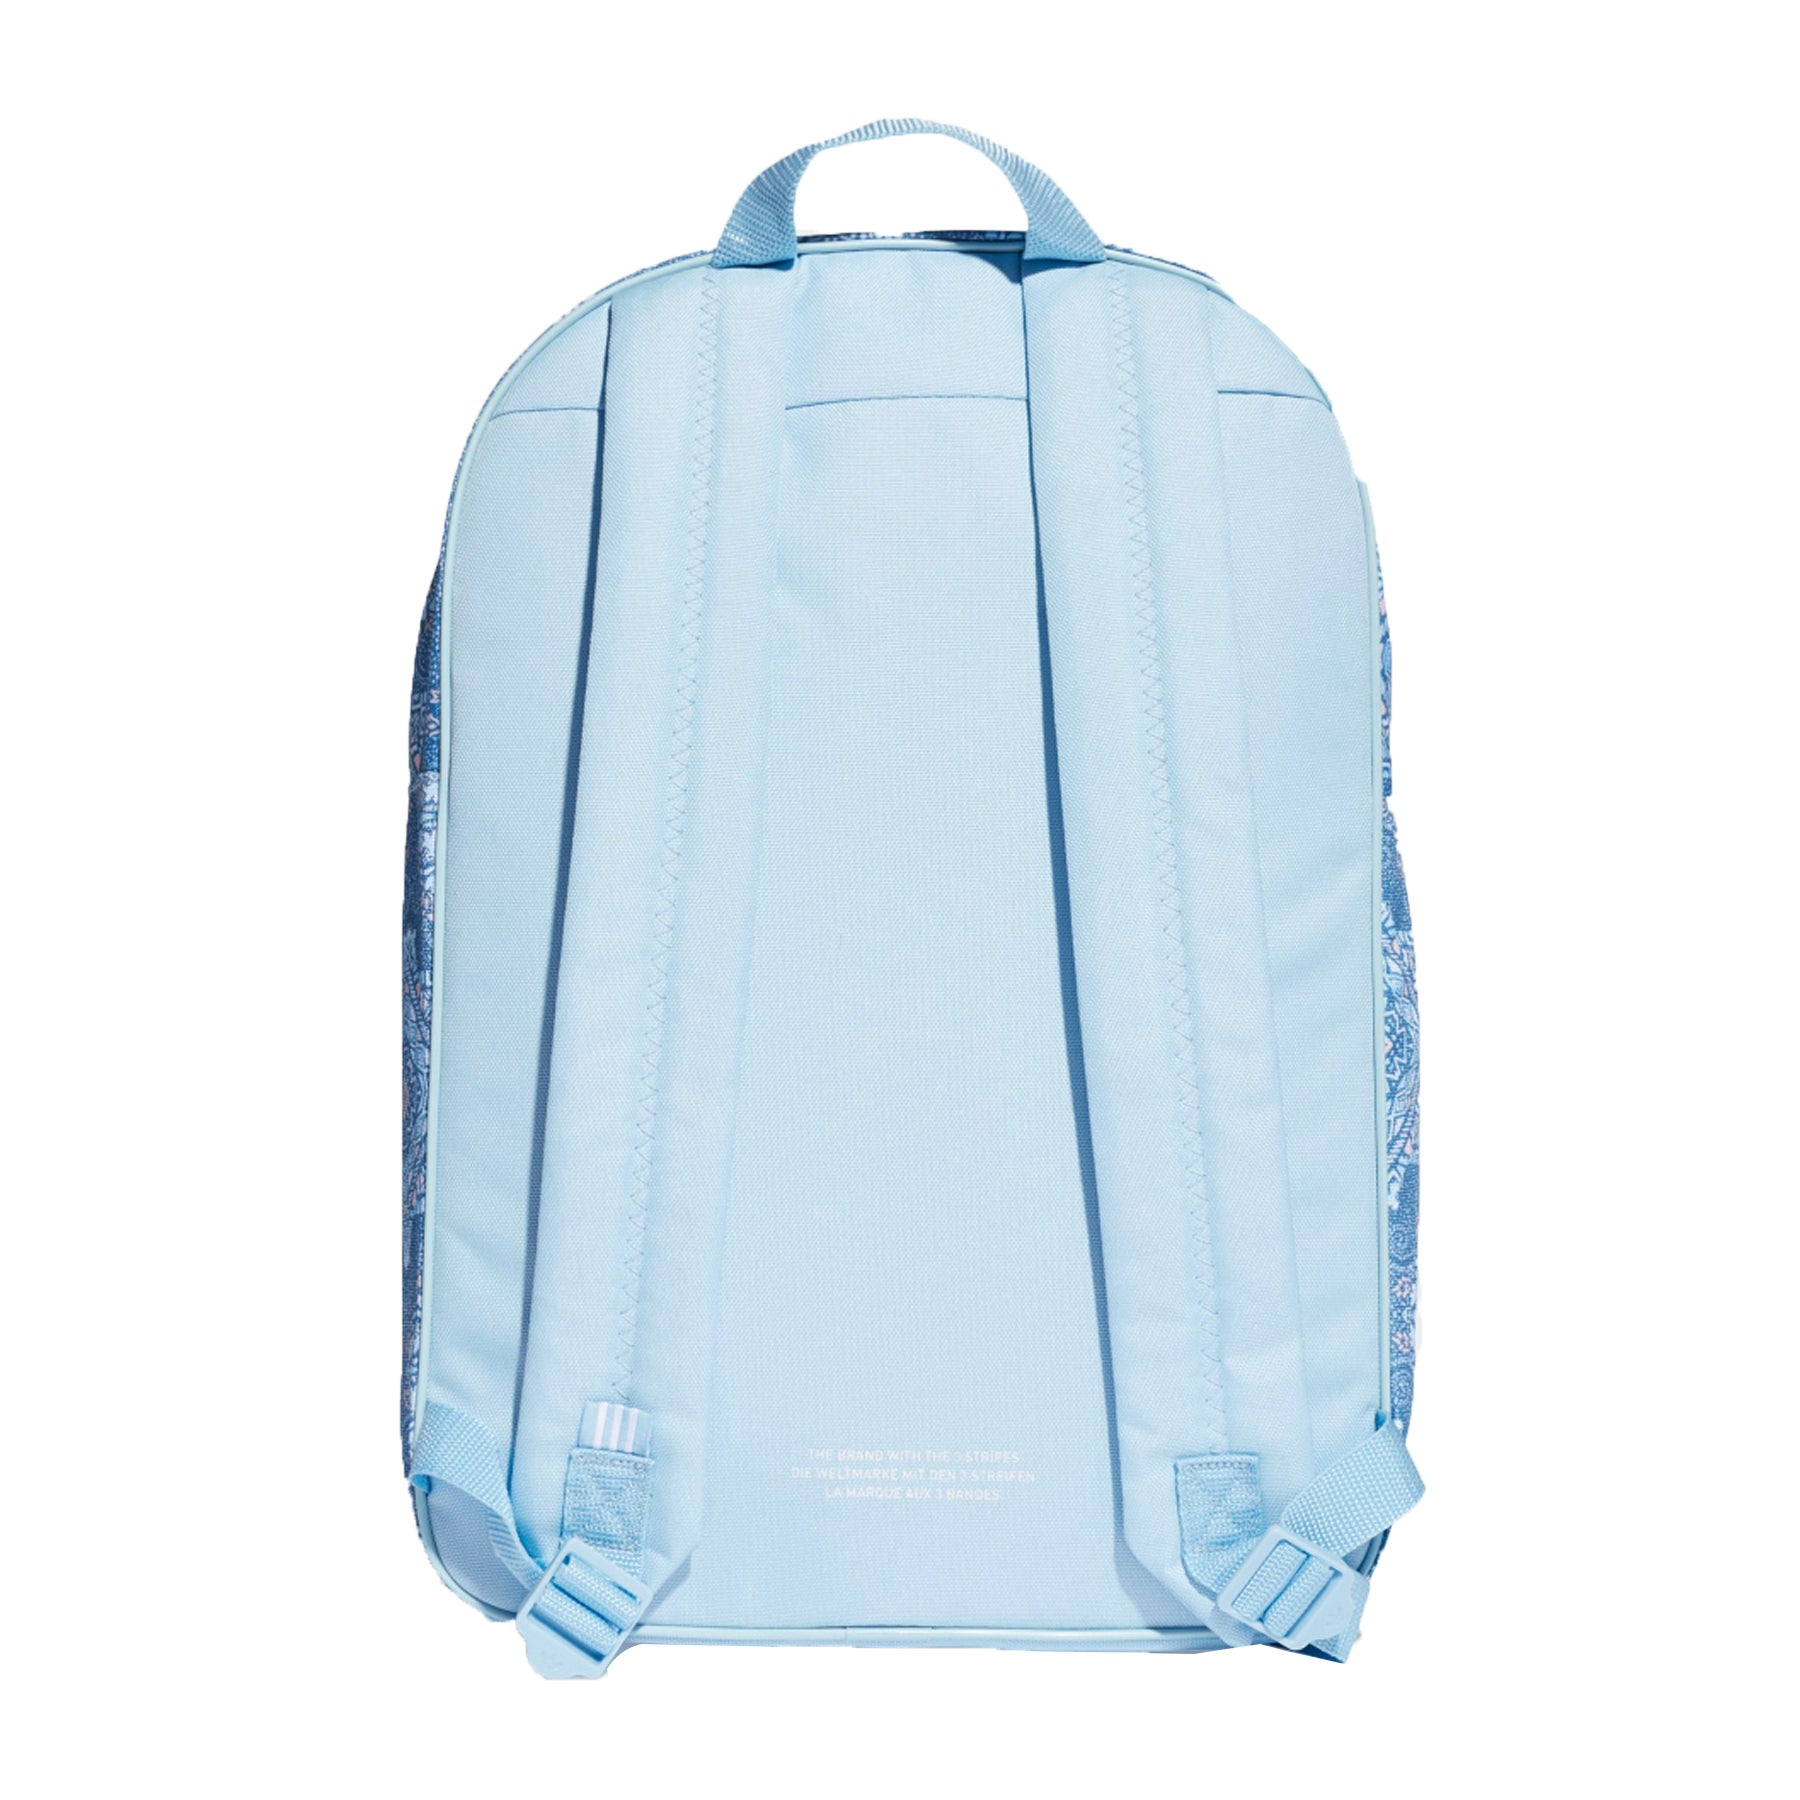 Sac Dos Adi Adidas Disponible Originals Sur Surfdome À iTPXZOku